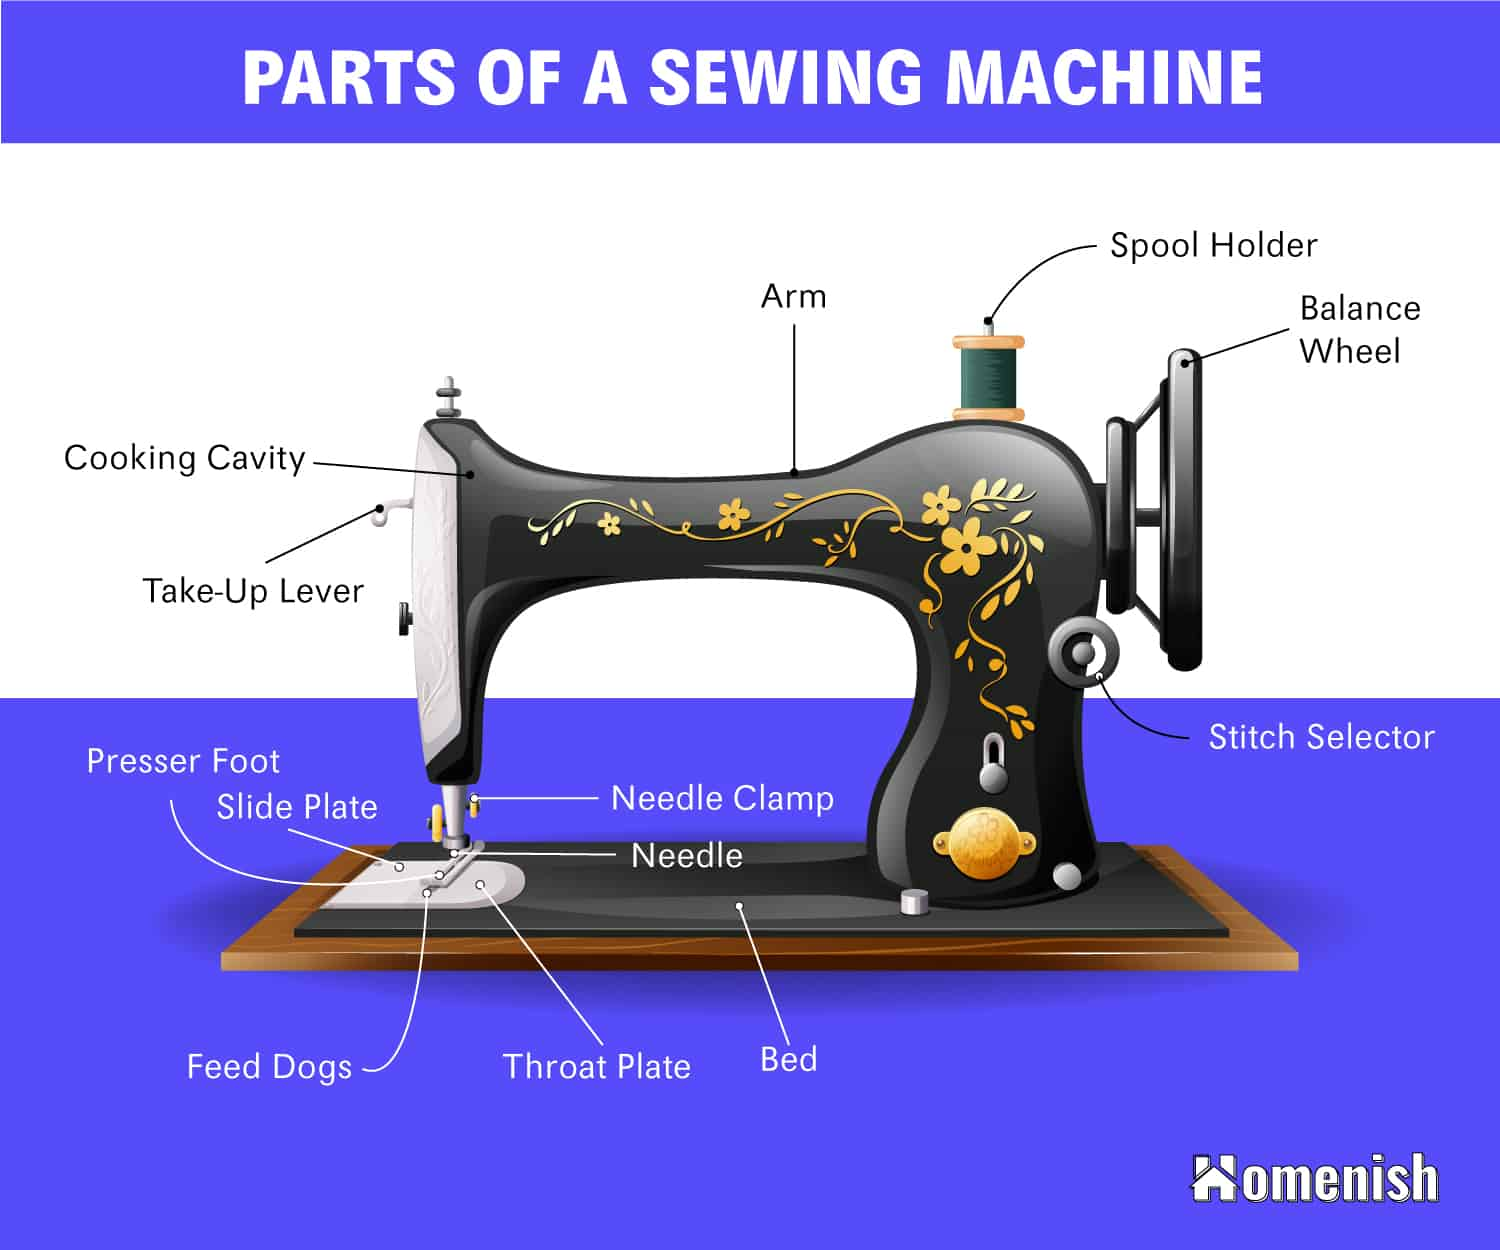 Parts of a Sewing Machine Diagram